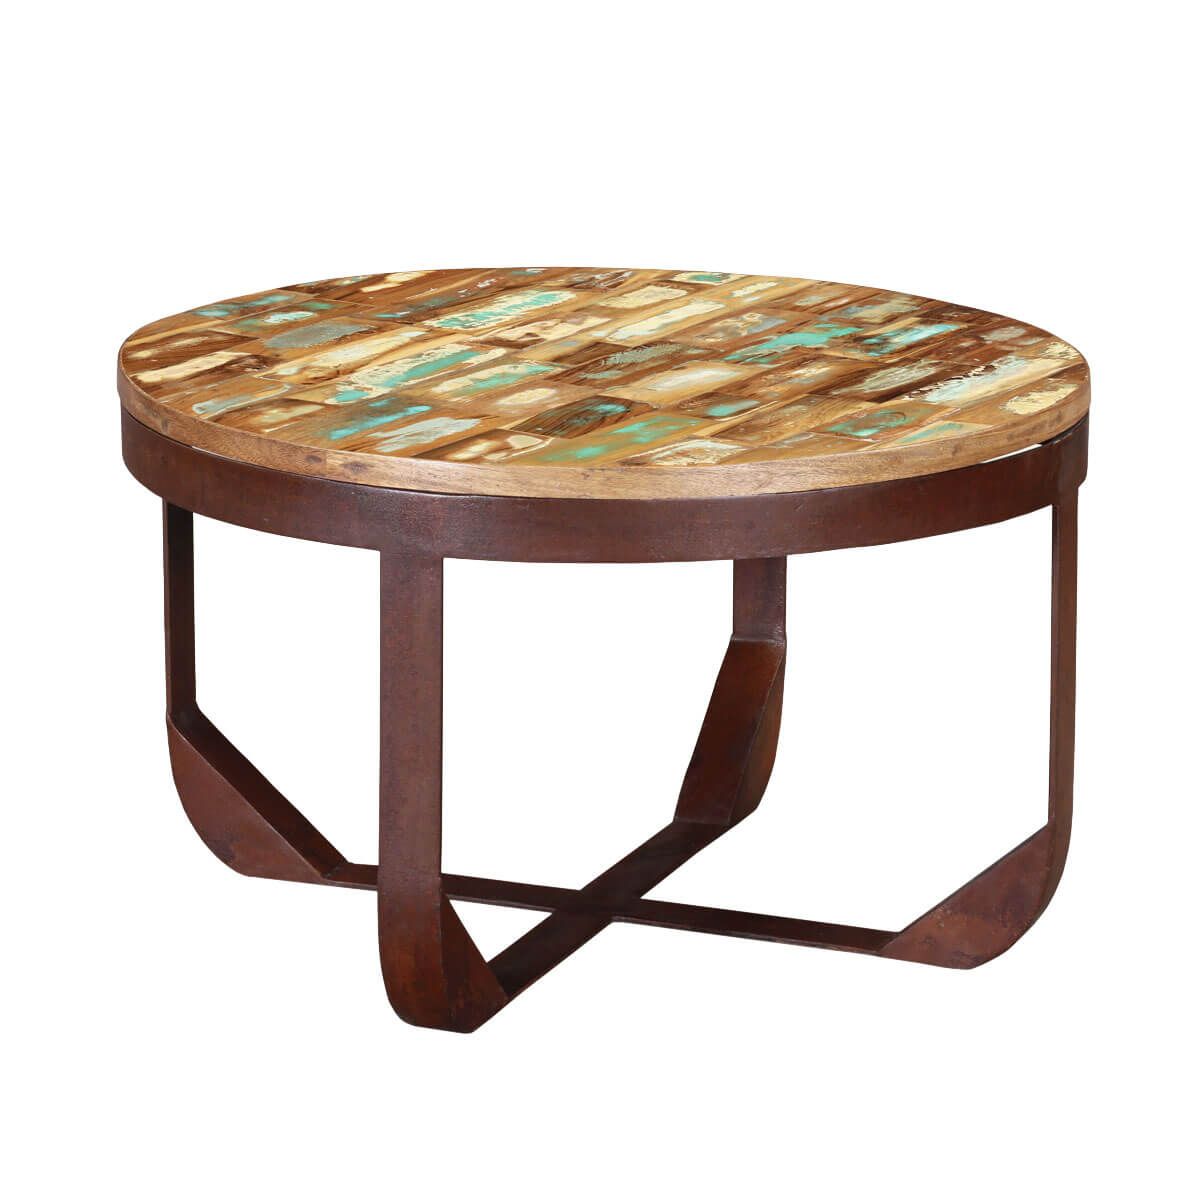 "Industrial 29"" Round Handcrafted Reclaimed Wood Rustic Coffee Table"